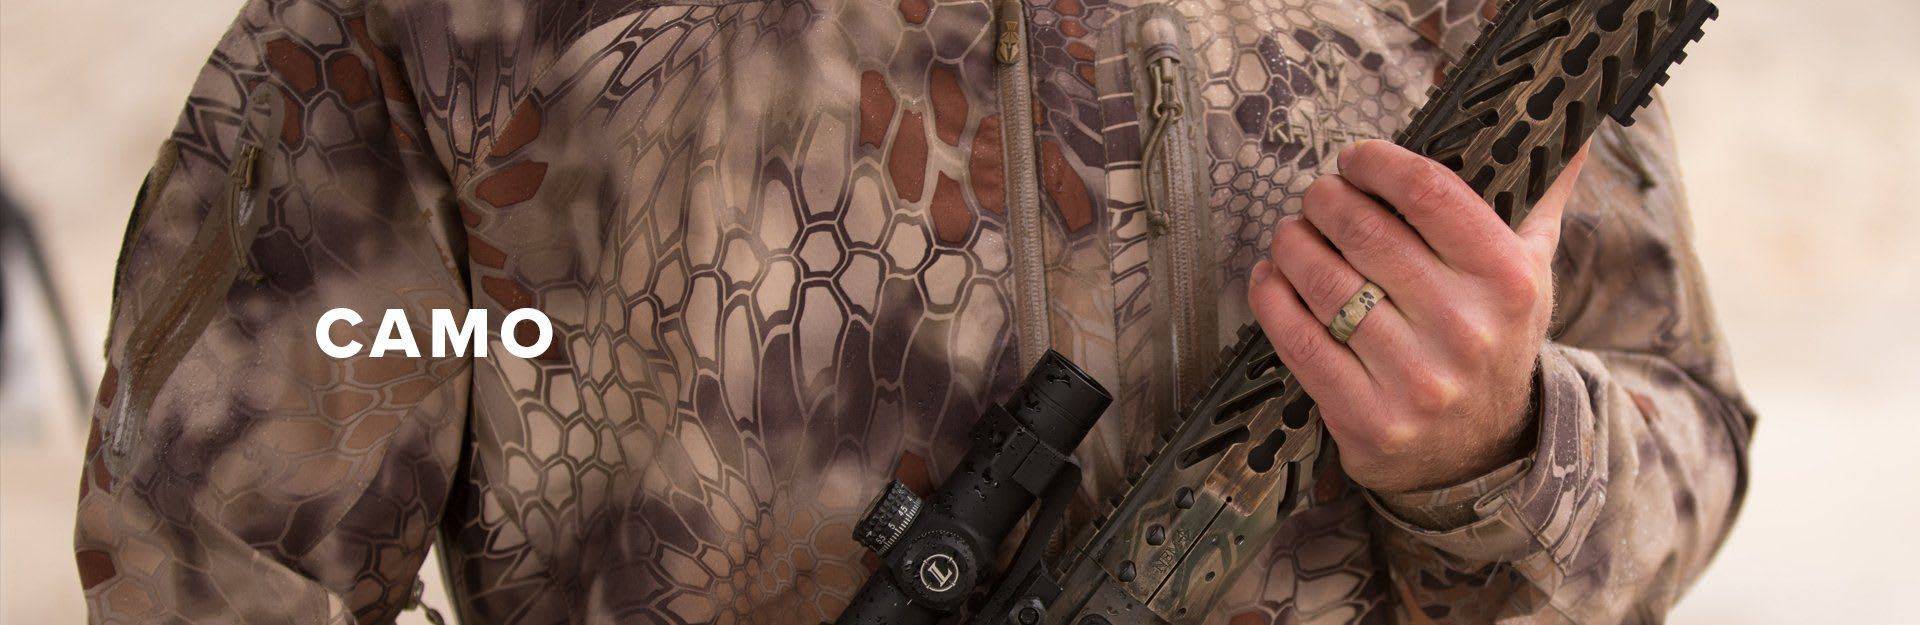 Camo, man holding a large rifle in kryptek camouflage